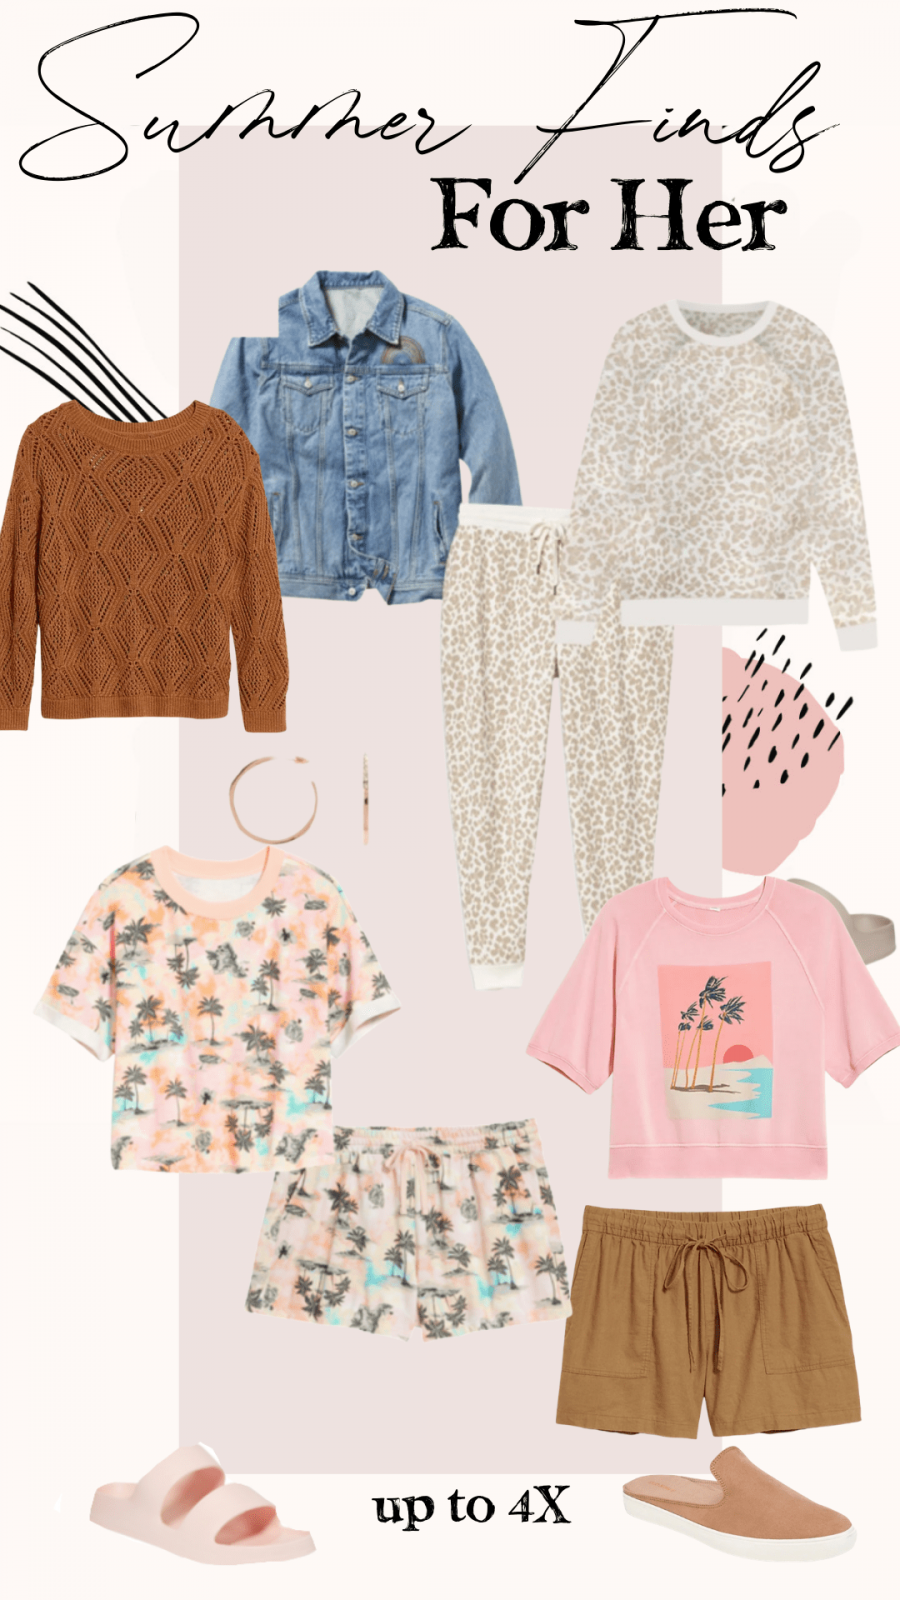 Affordable Summer Fashion Finds for the Whole Family